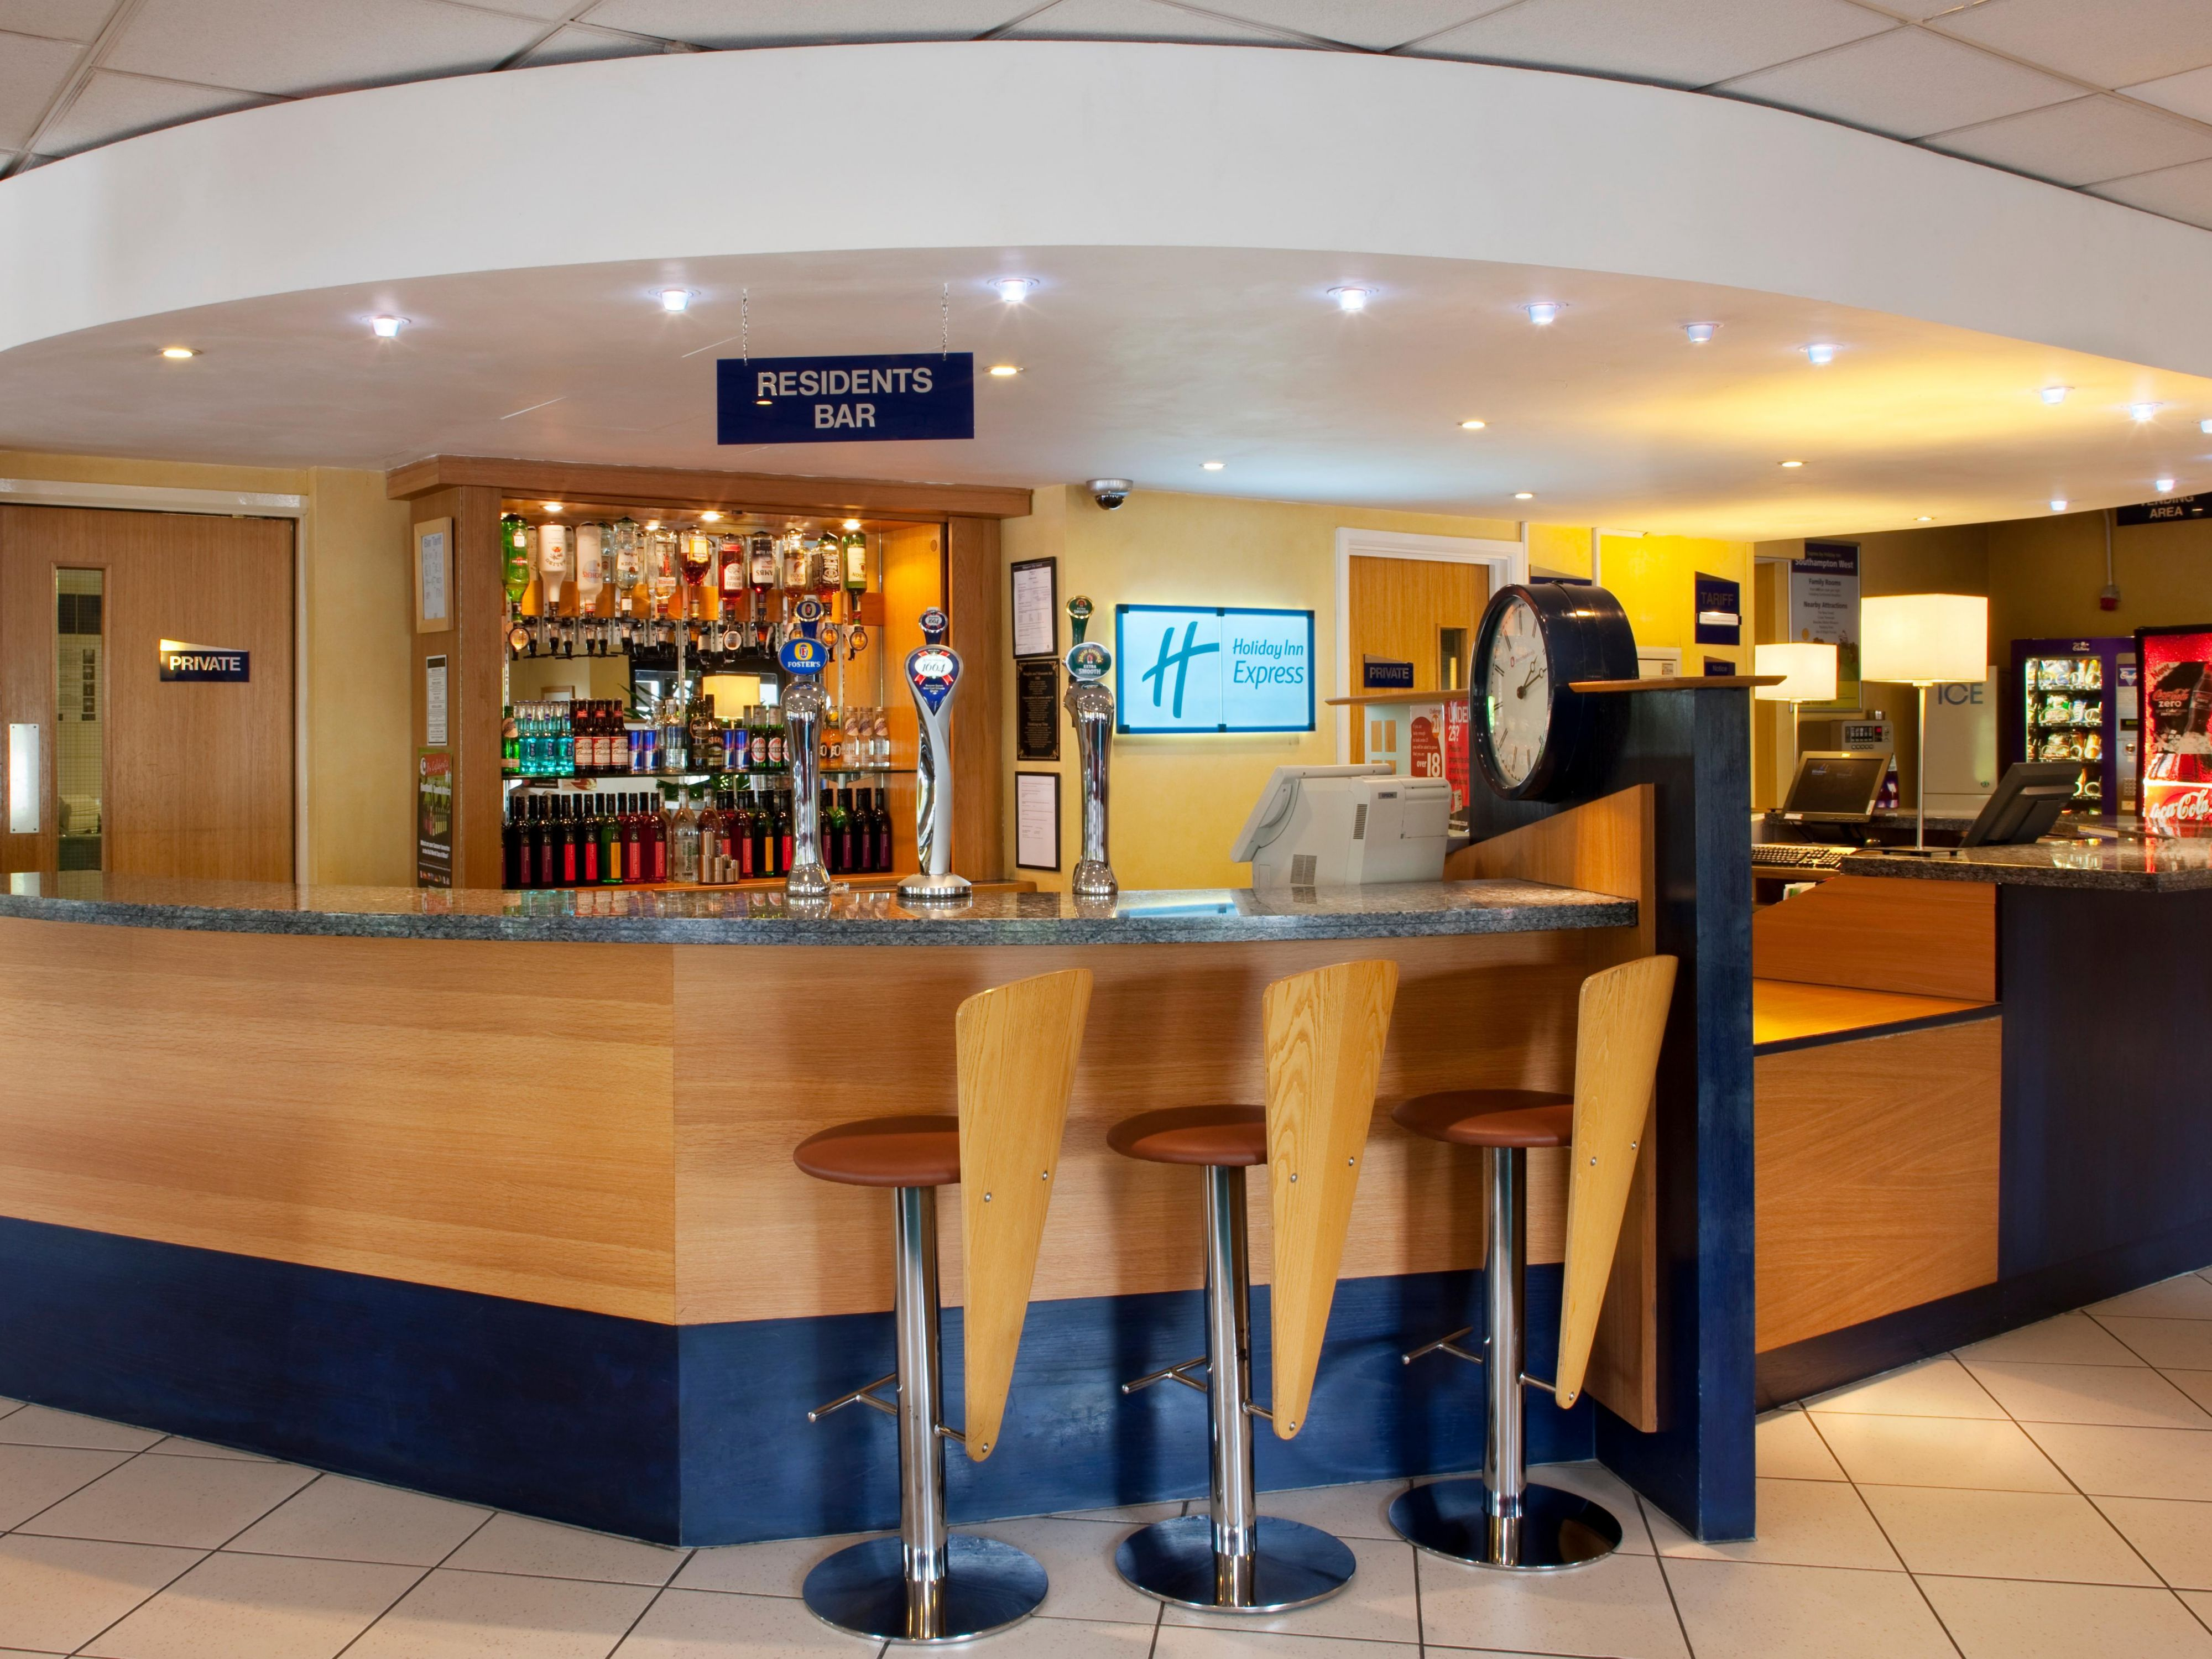 Our bar is open throughout the day and serves a variety of drinks